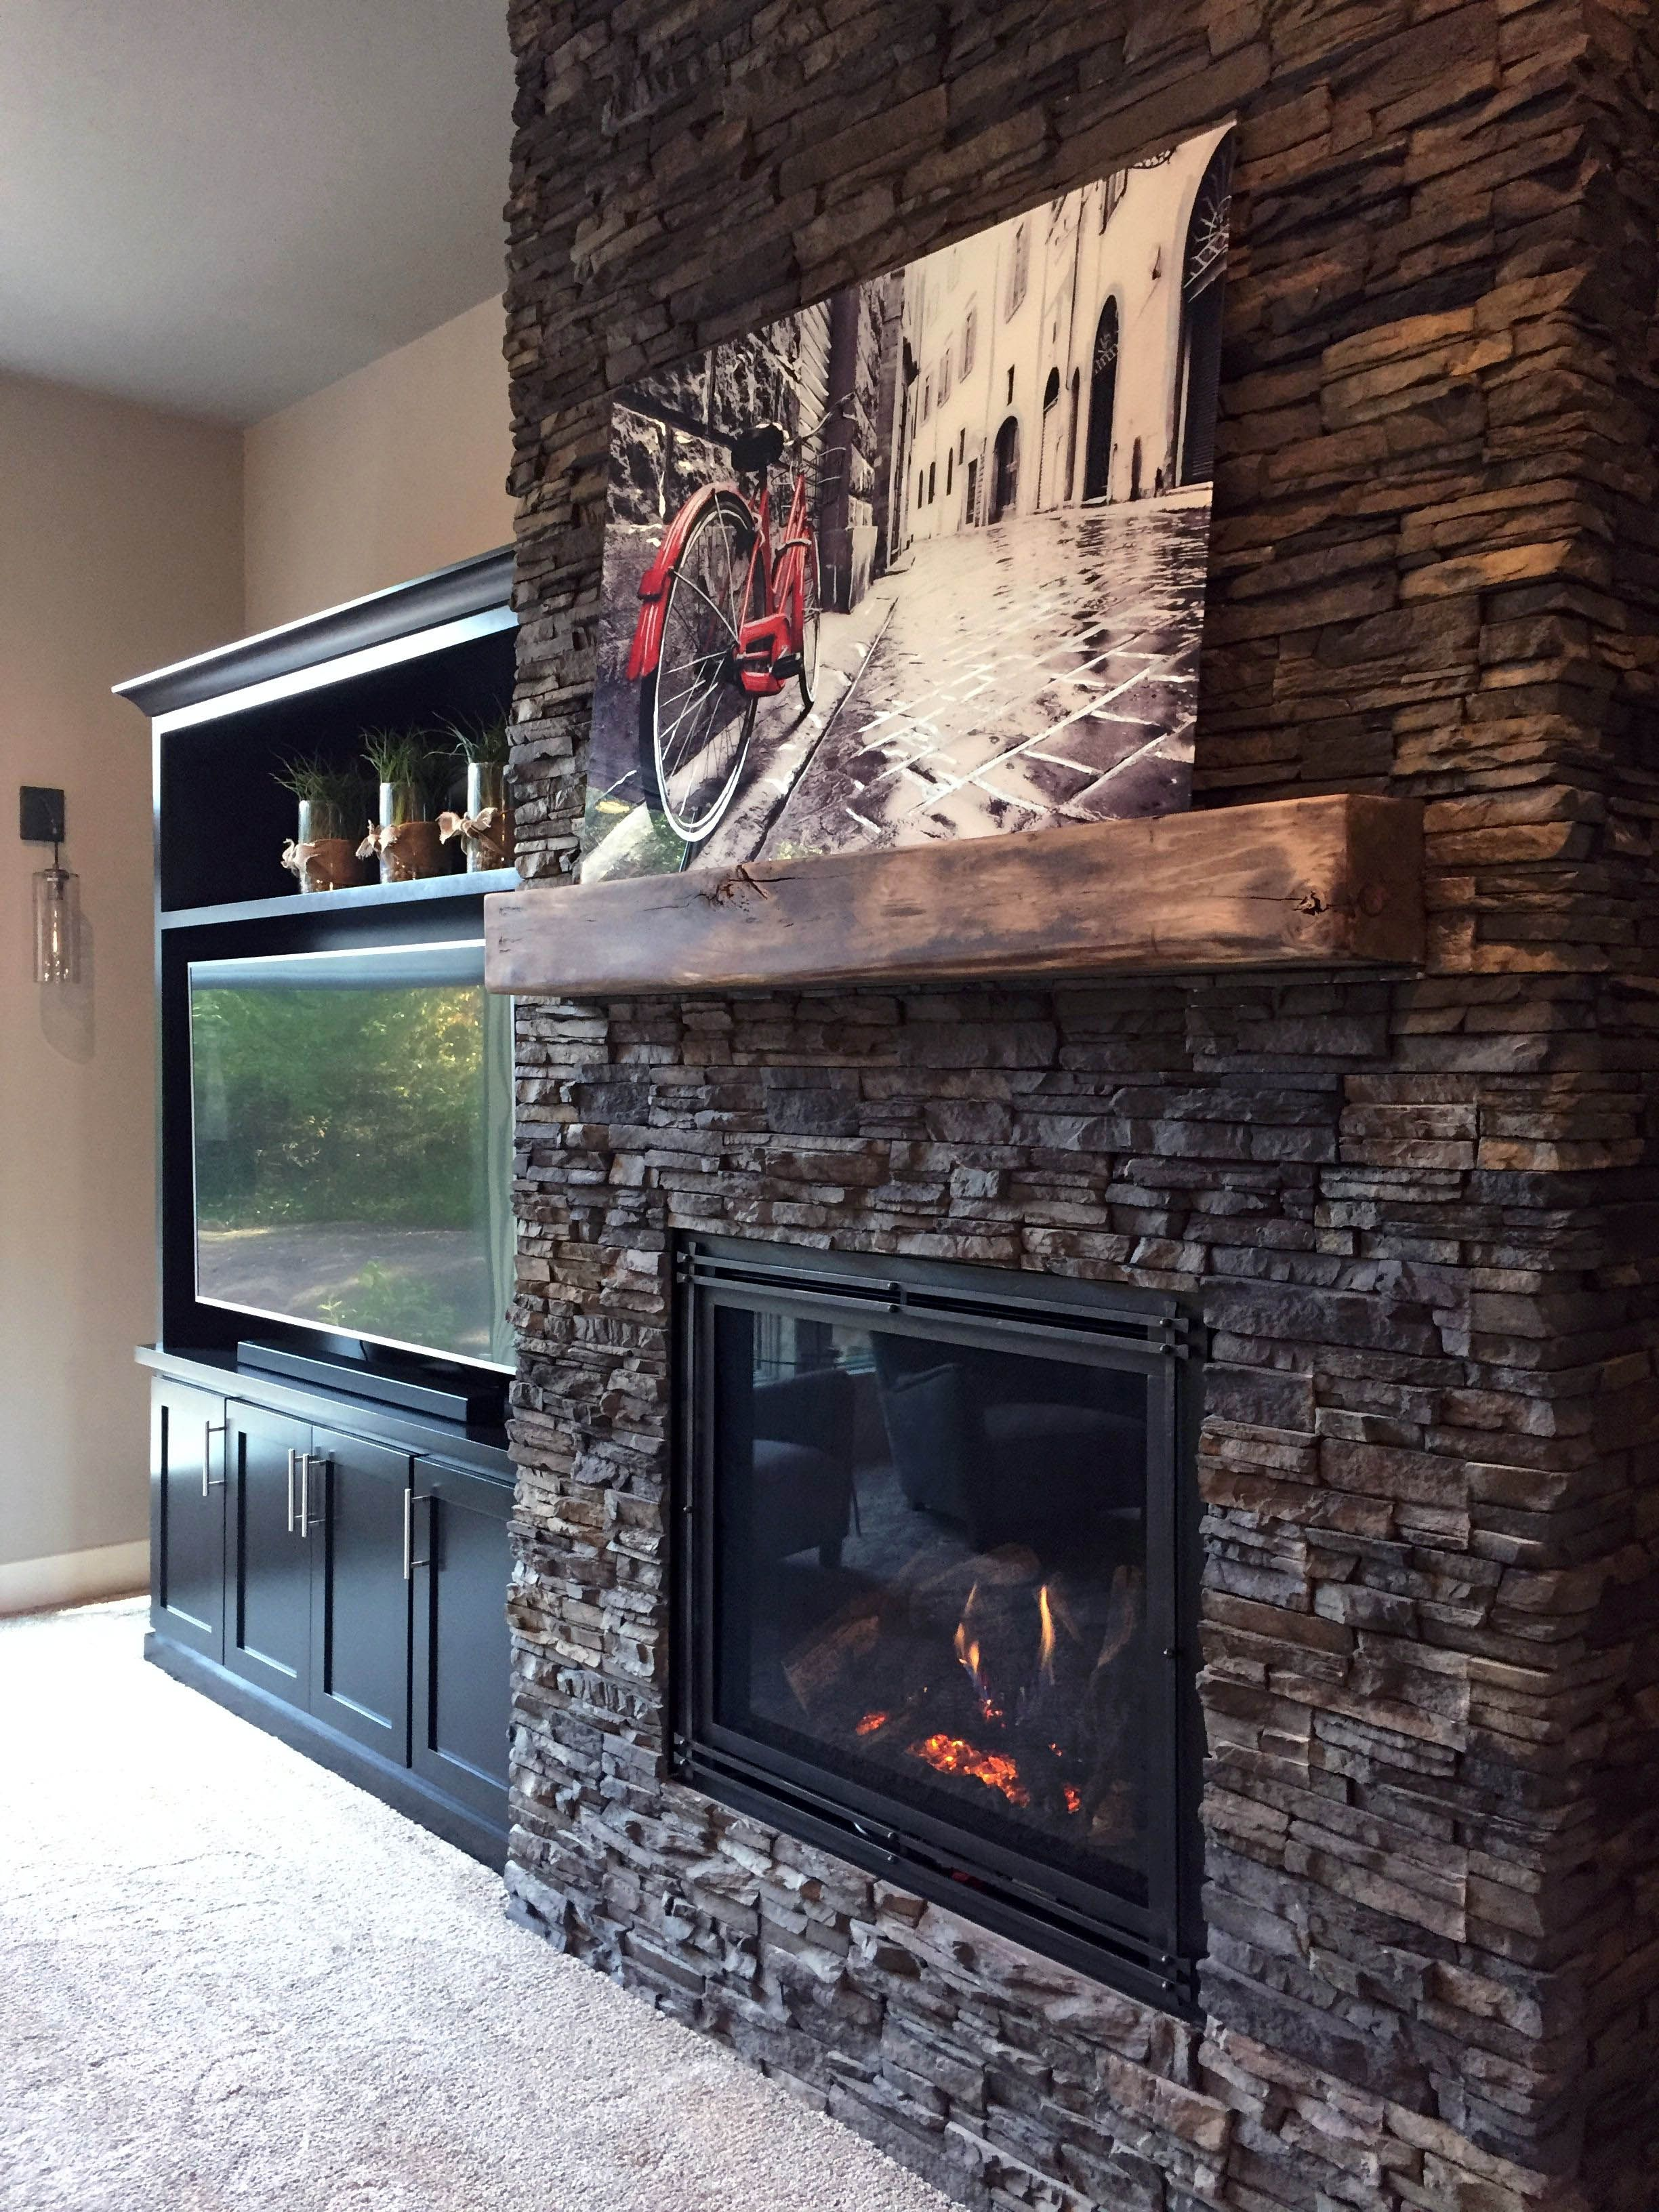 New Stone Fireplace Contractors Near Me Exclusive On Homesable Home Decor Faux Stone Fireplaces Stone Fireplace Surround Natural Stone Fireplaces